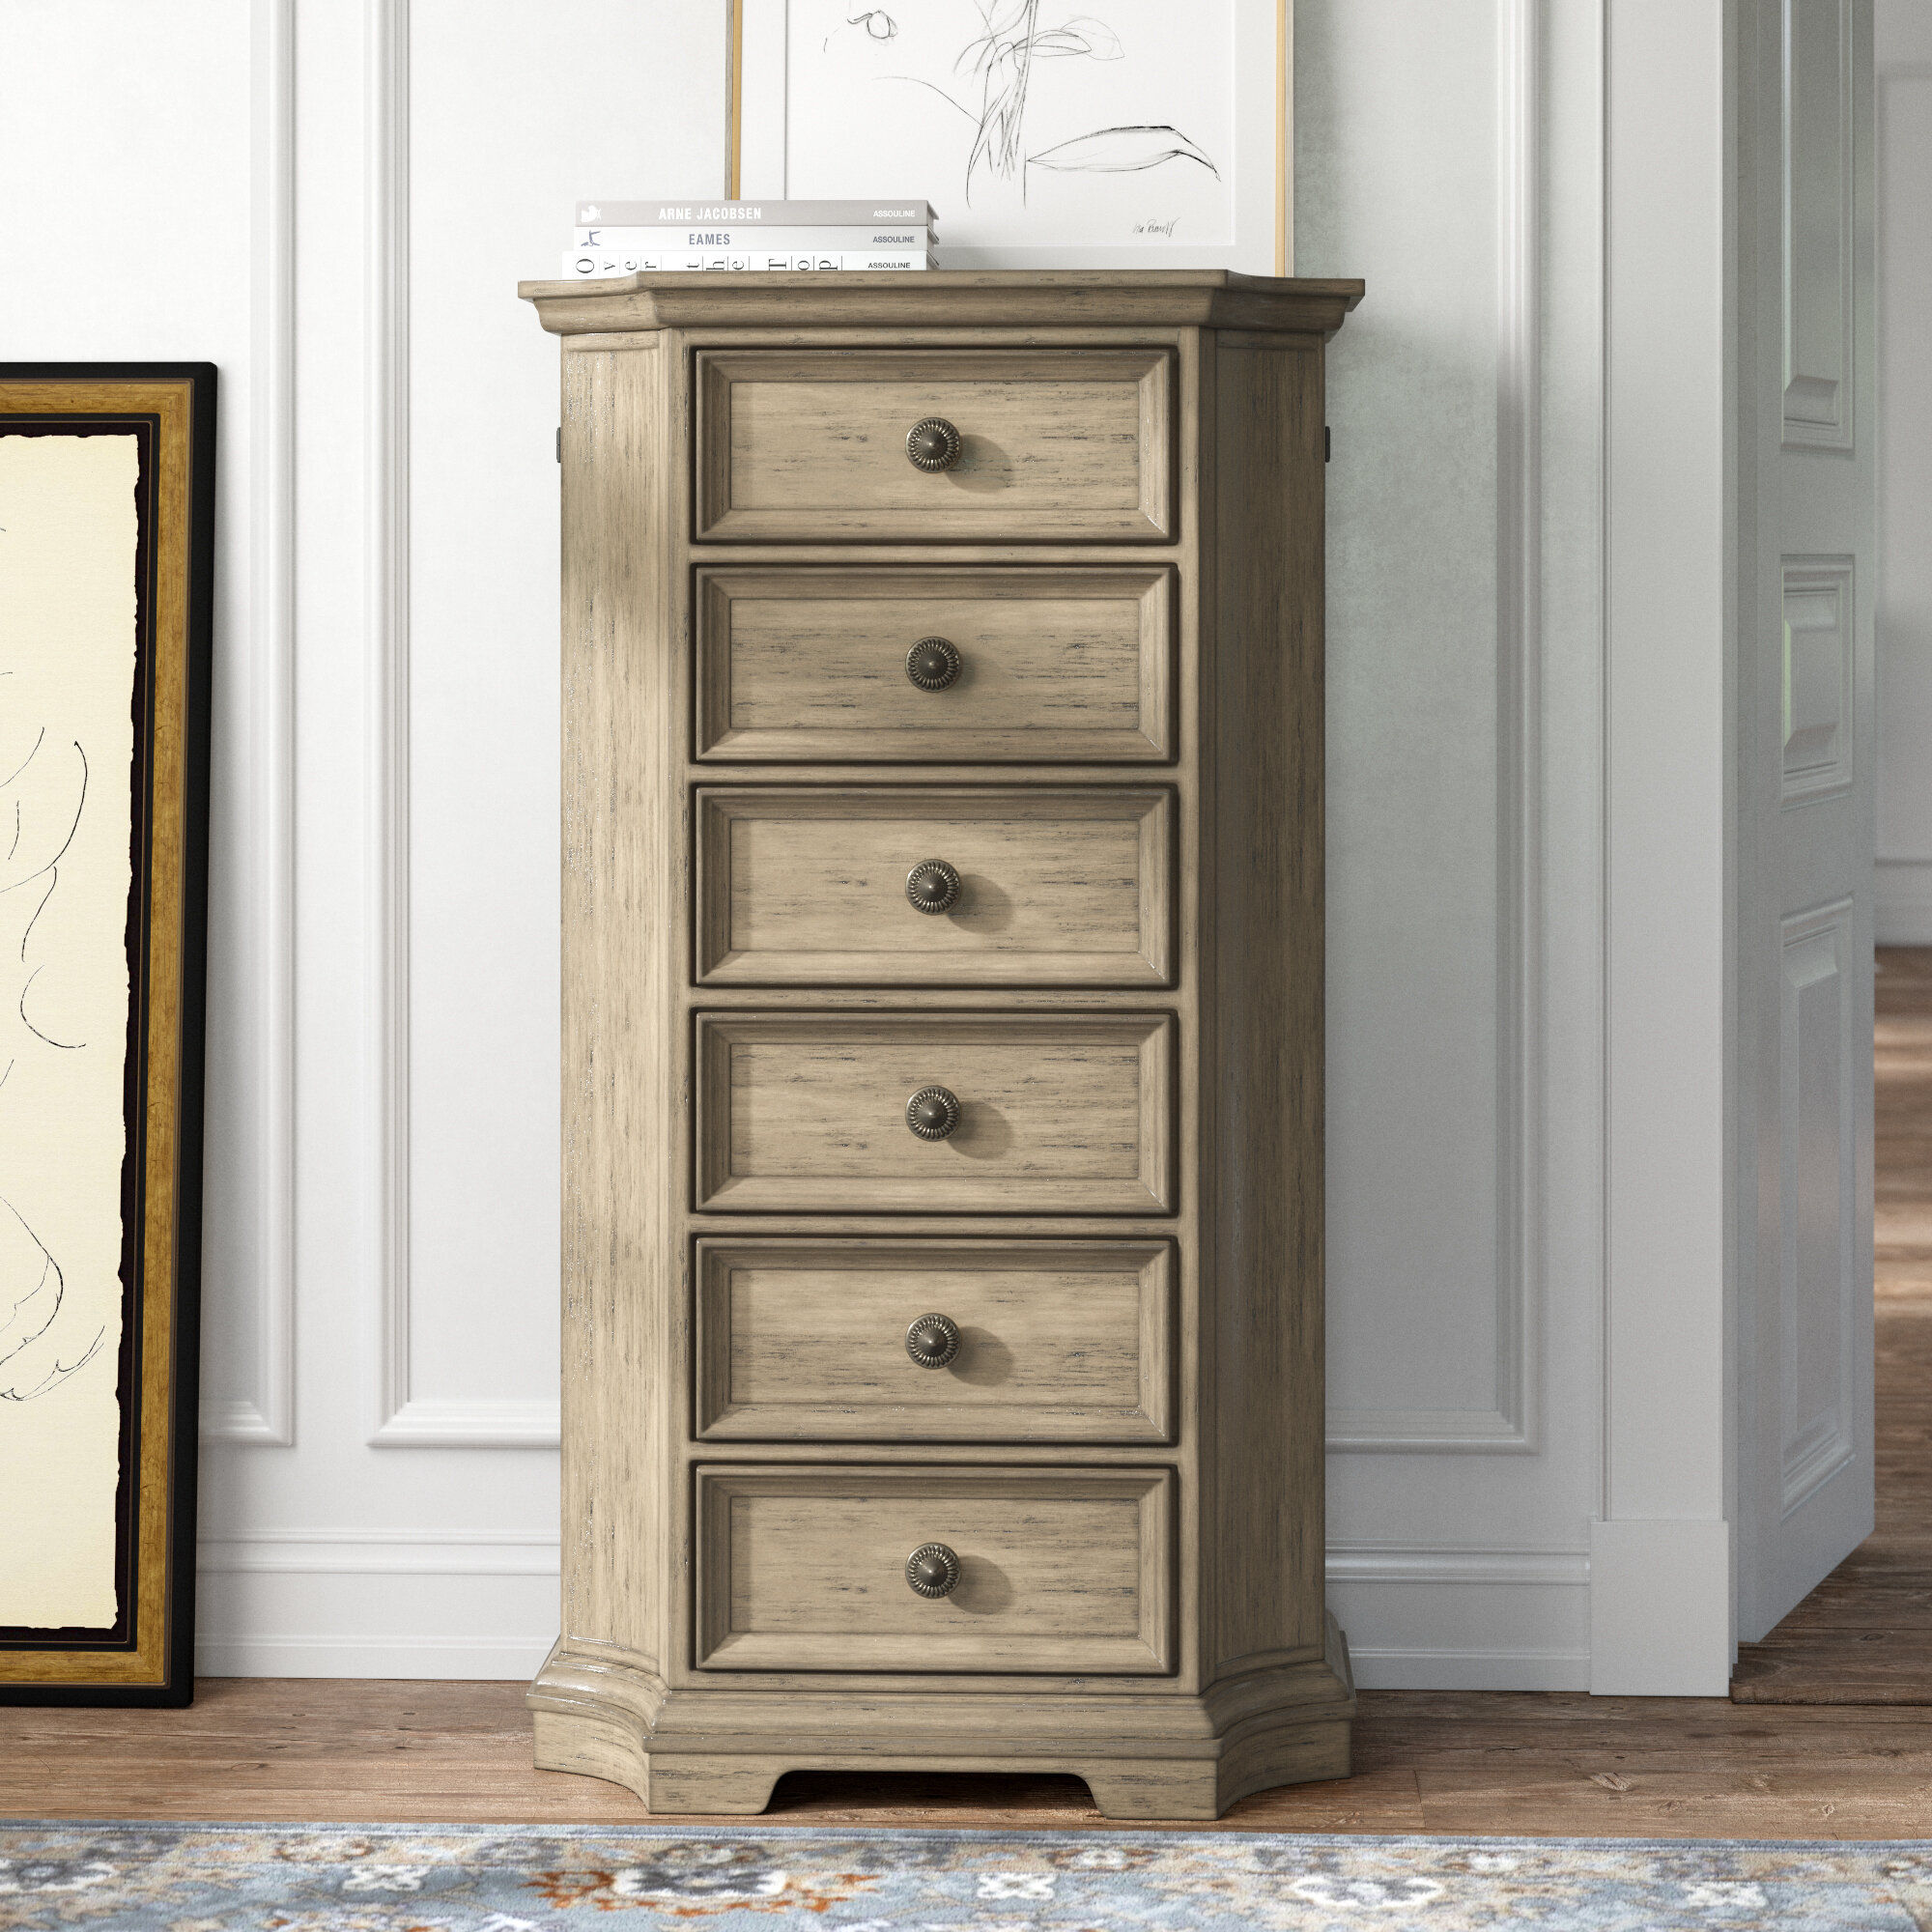 Kelly Clarkson Home Troutt 6 Drawer Lingerie Chest Reviews Wayfair